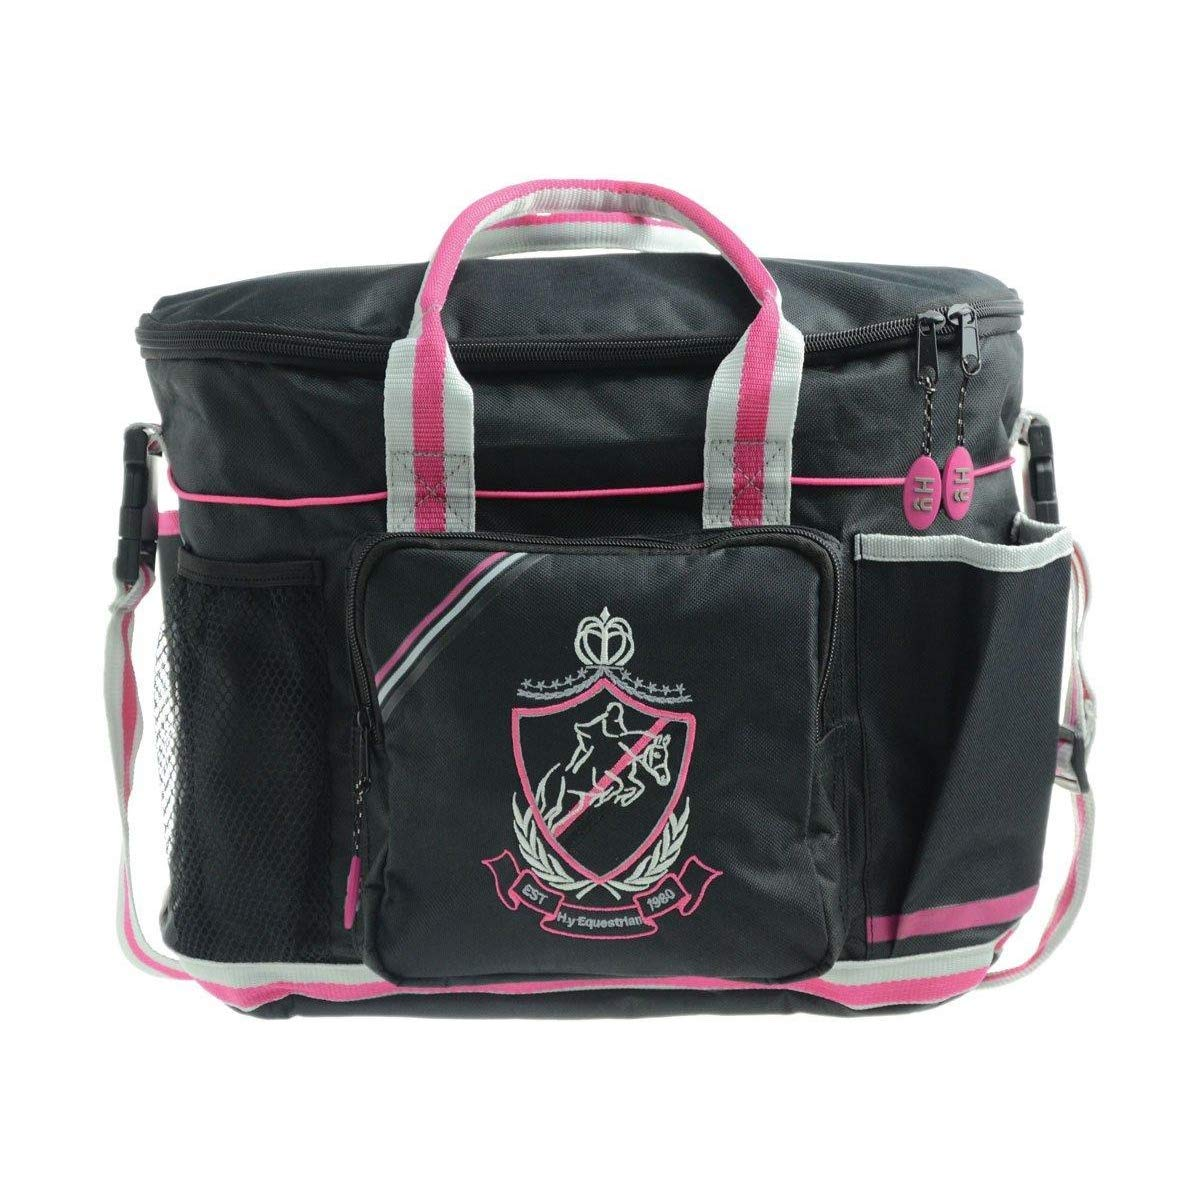 Black Pink Grey UK Size  One Size Black Pink Grey UK Size  One Size HySHINE Pro Grooming Bag